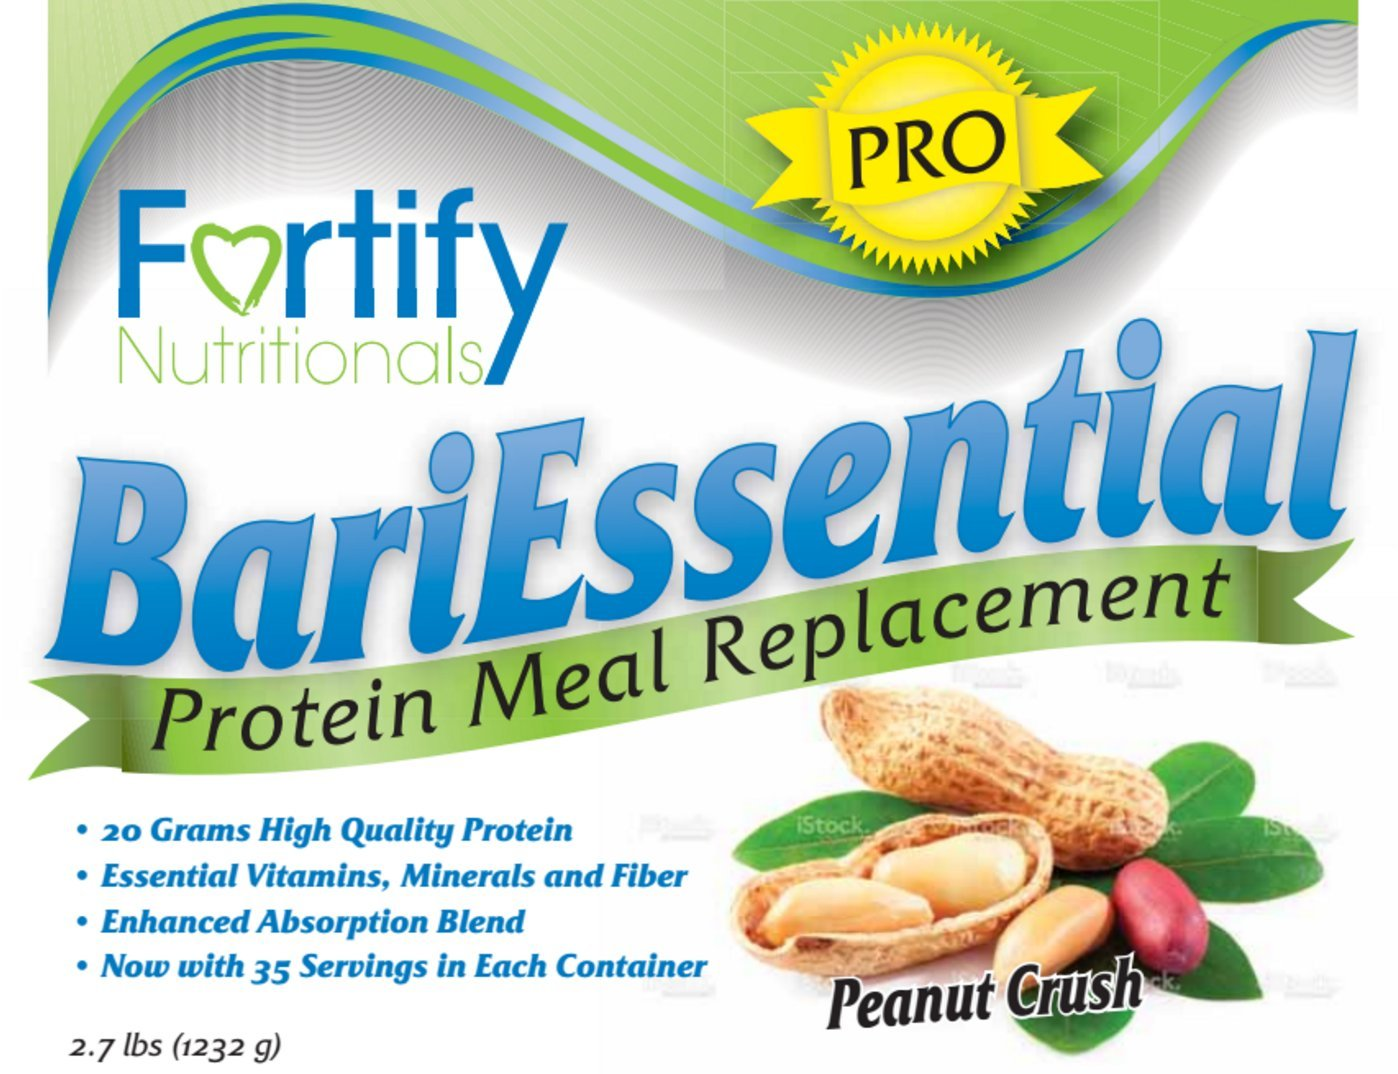 Amazon.com: BariEssential PRO Protein Meal Replacement Peanut Crush: Health & Personal Care